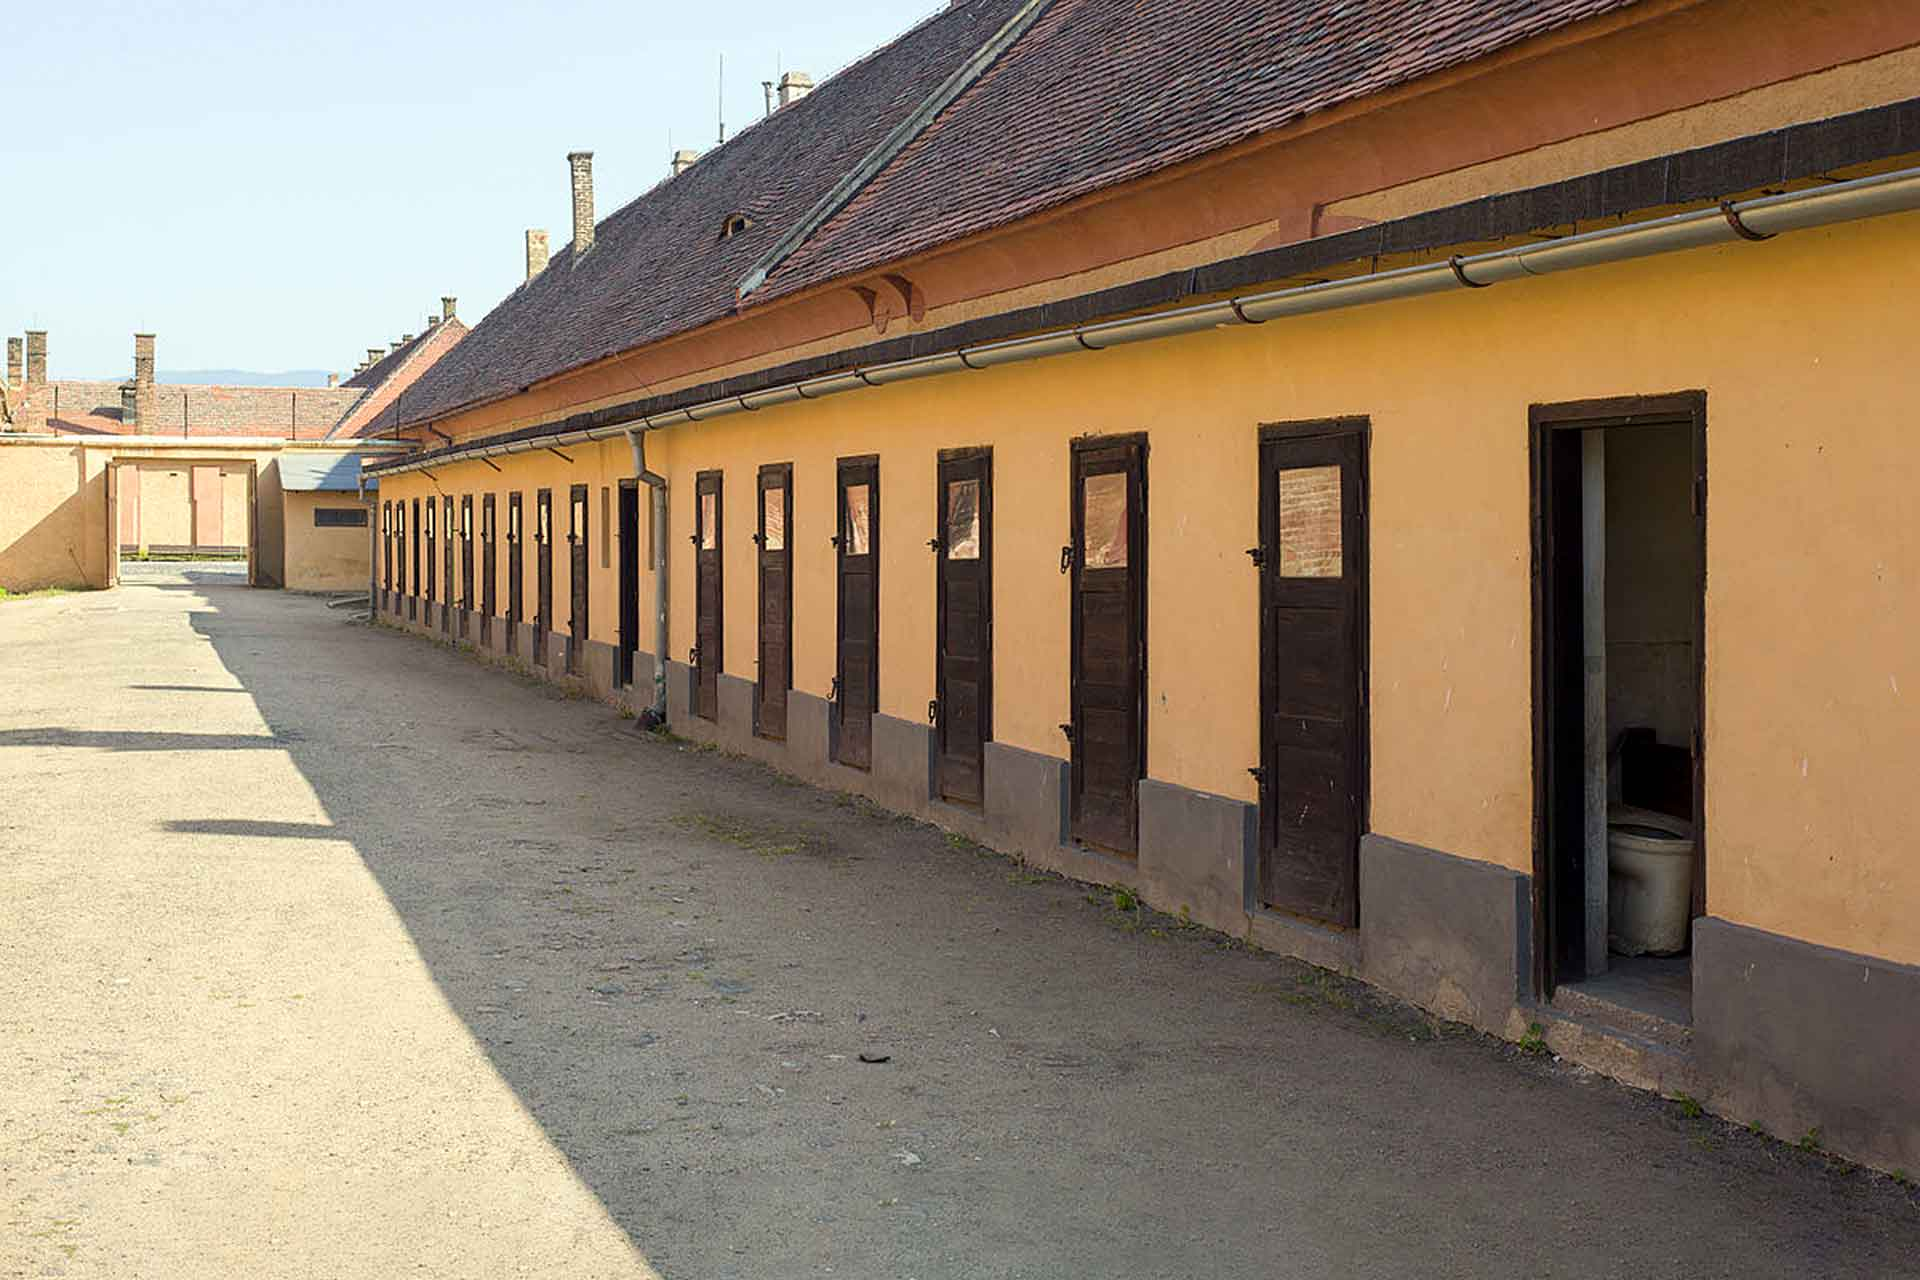 Theresienstadt concentration camp special housing unit.